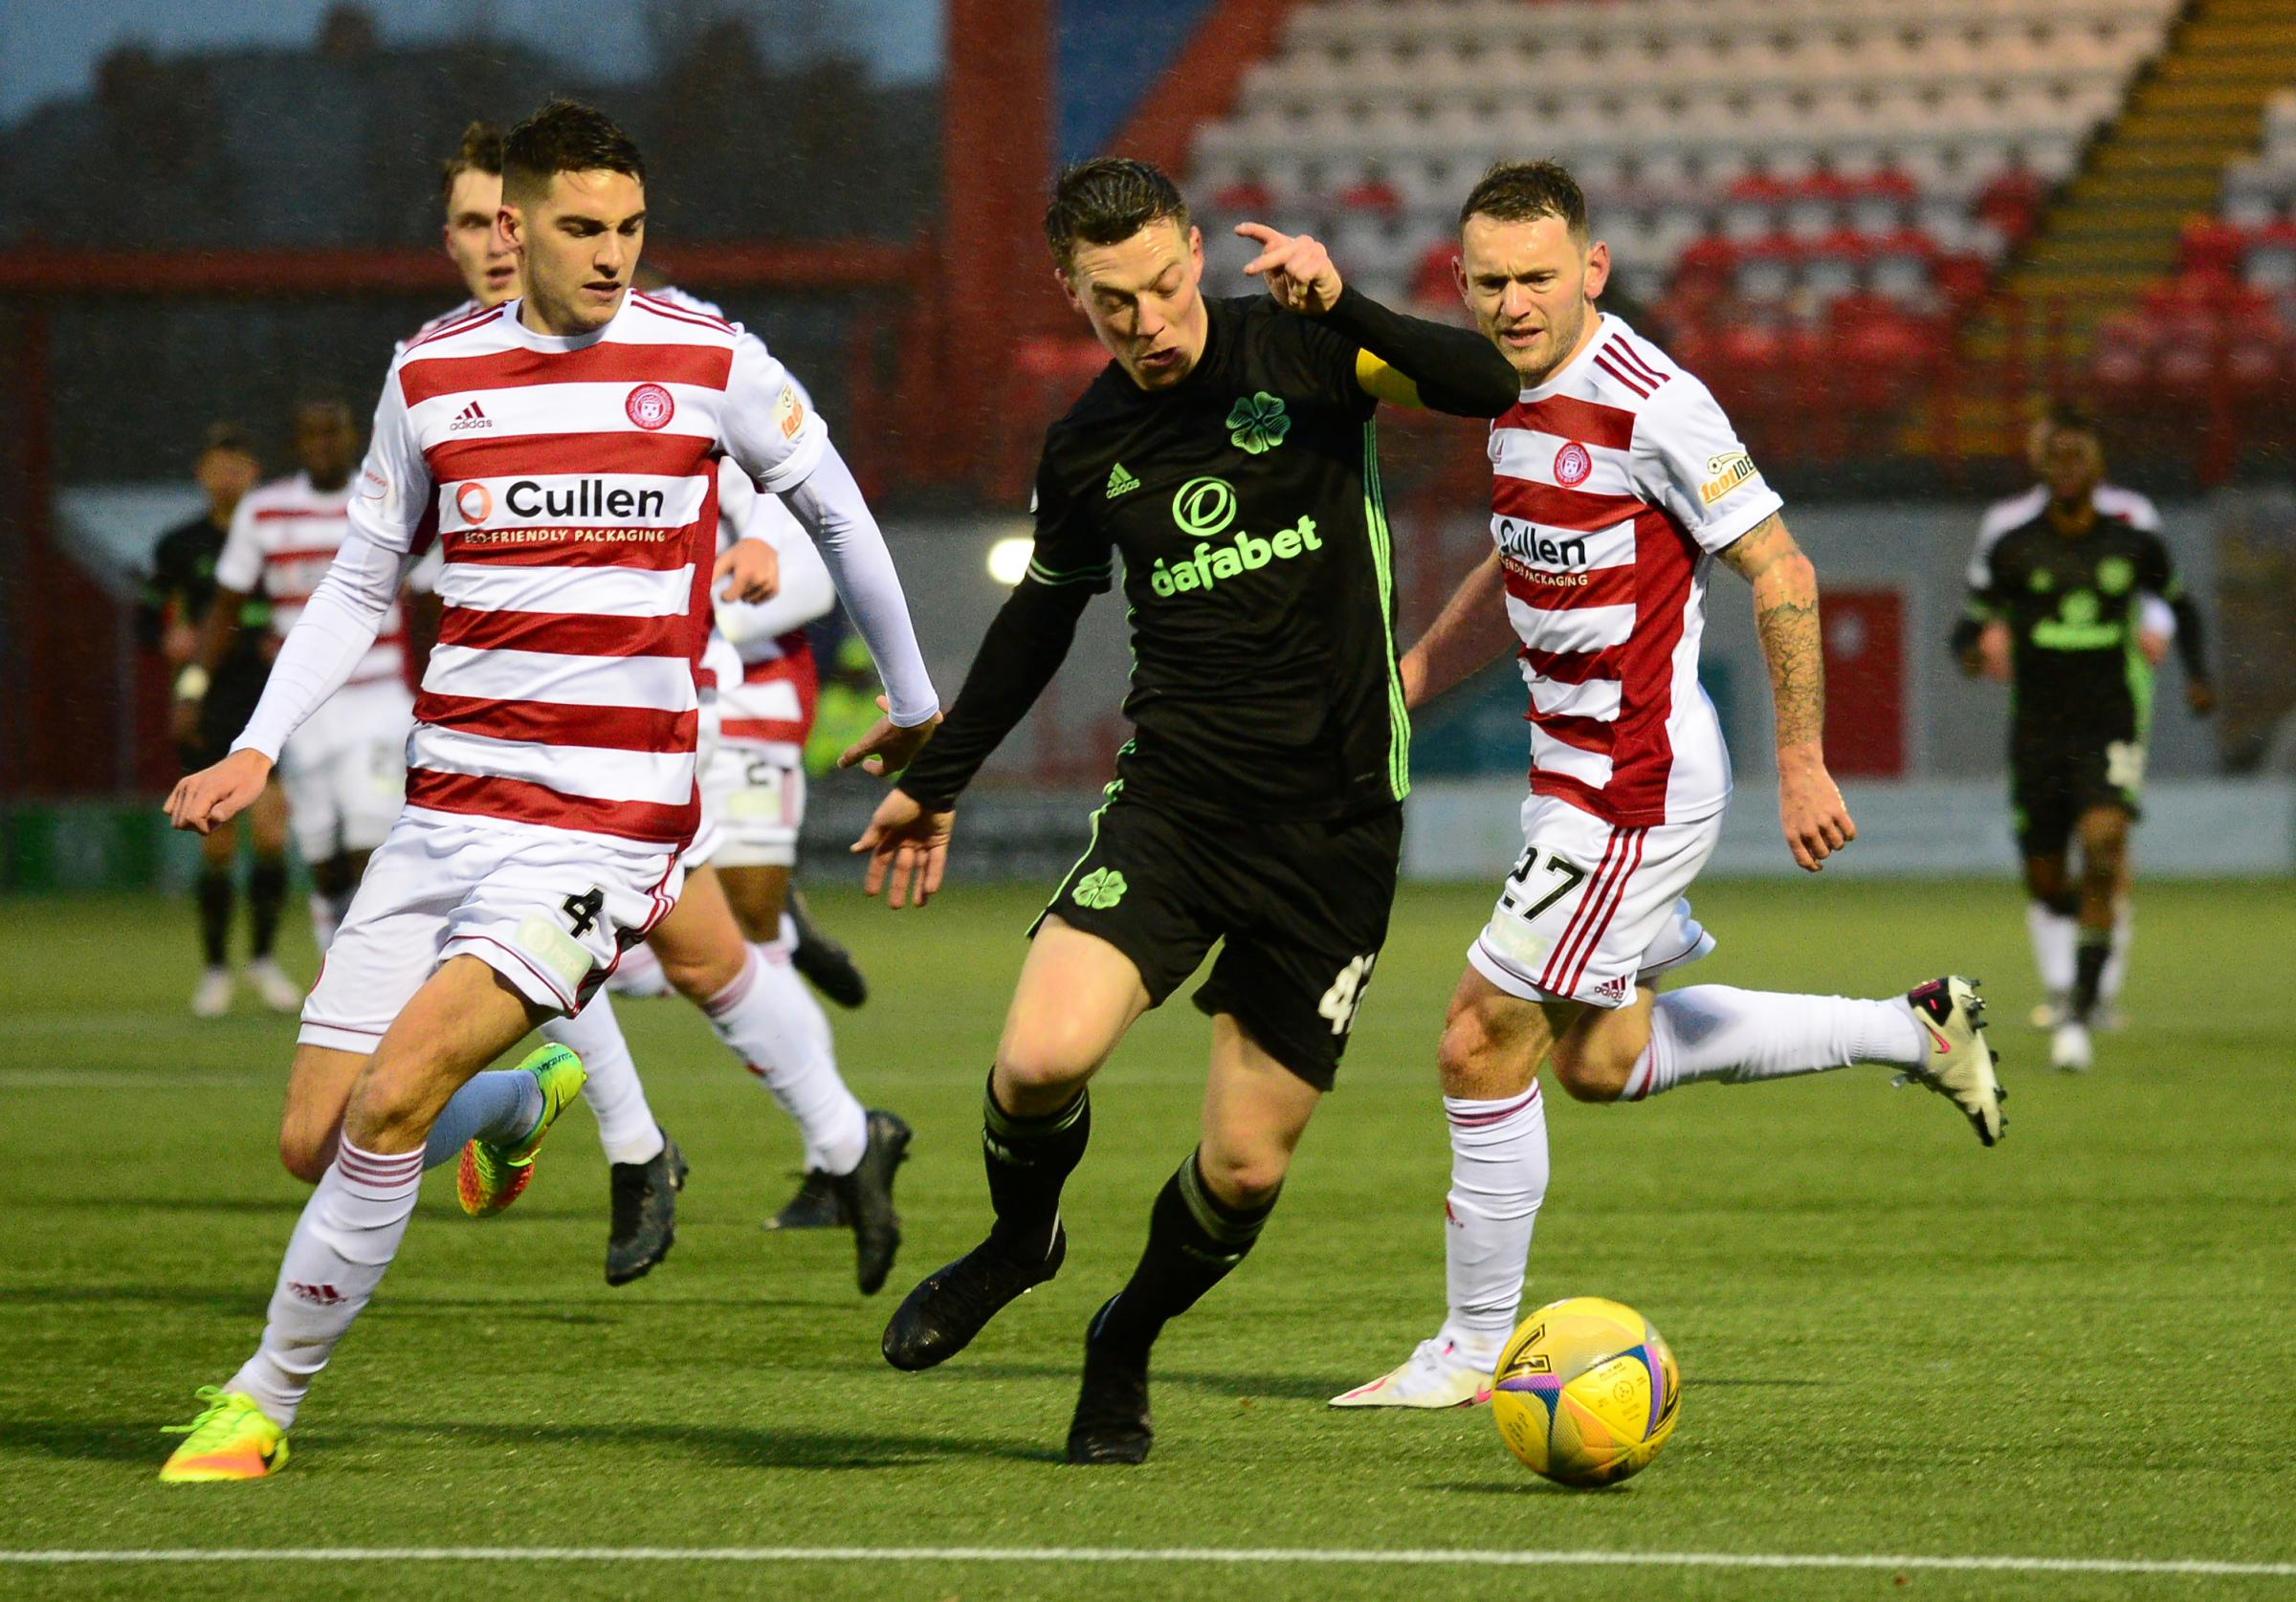 Lee Hodson urges Hamilton to use being written off to fire them up in Premiership survival battle